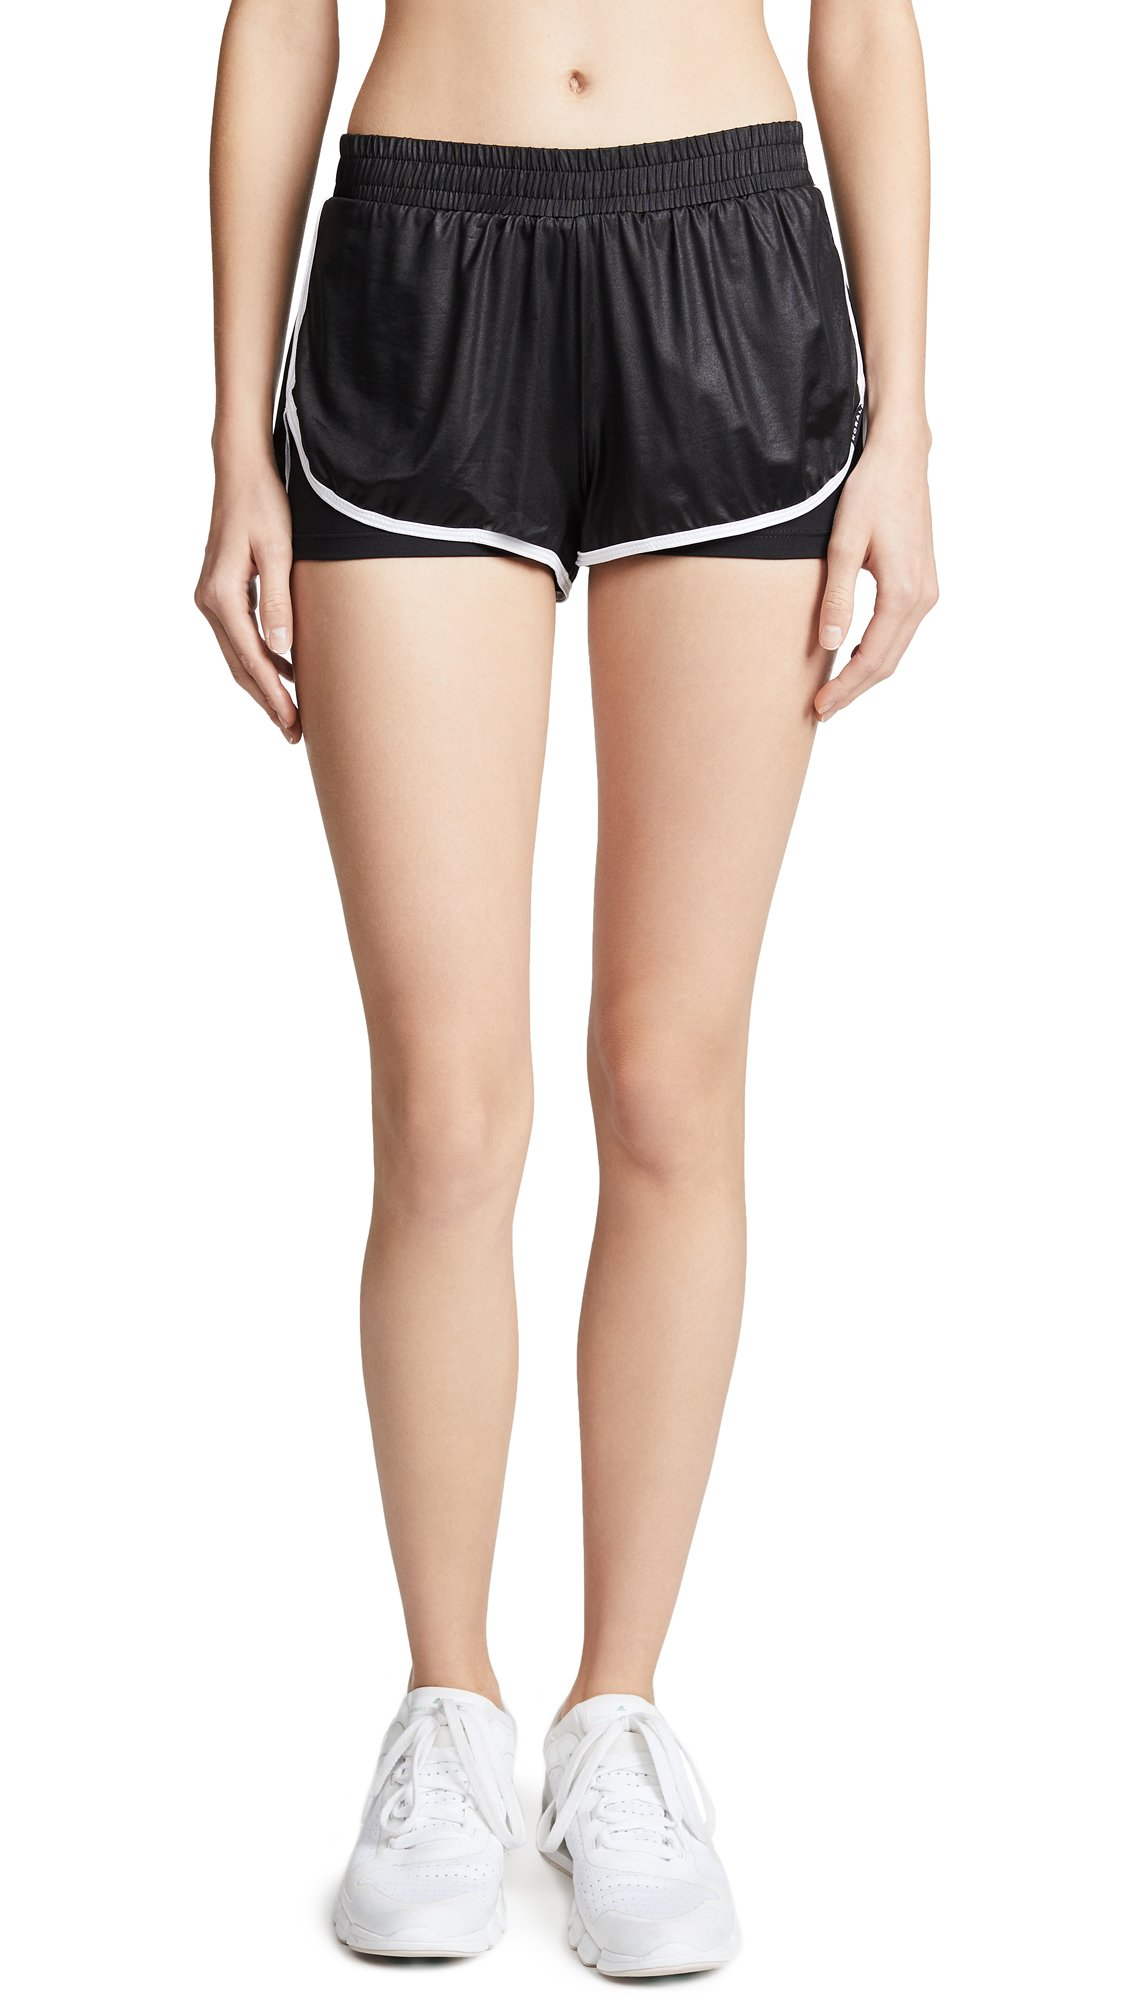 Koral Activewear Women's Scout Shorts, Black/White, X-Small